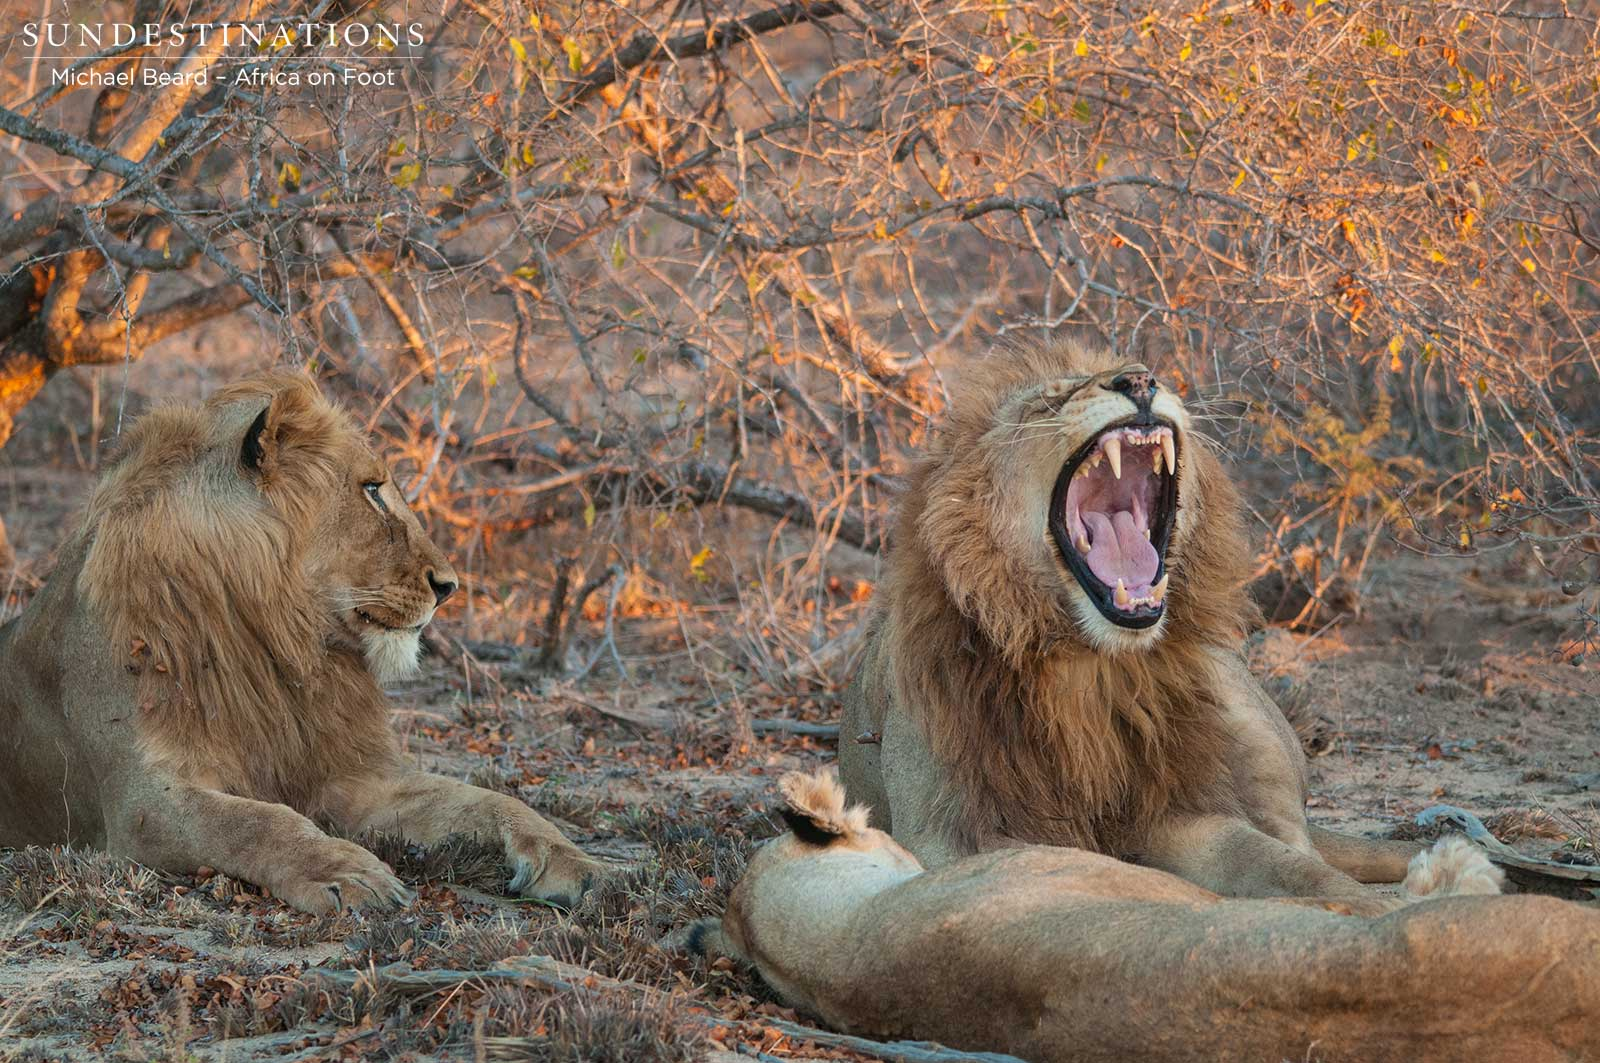 Rare Photos of Both Mapoza Male Lions